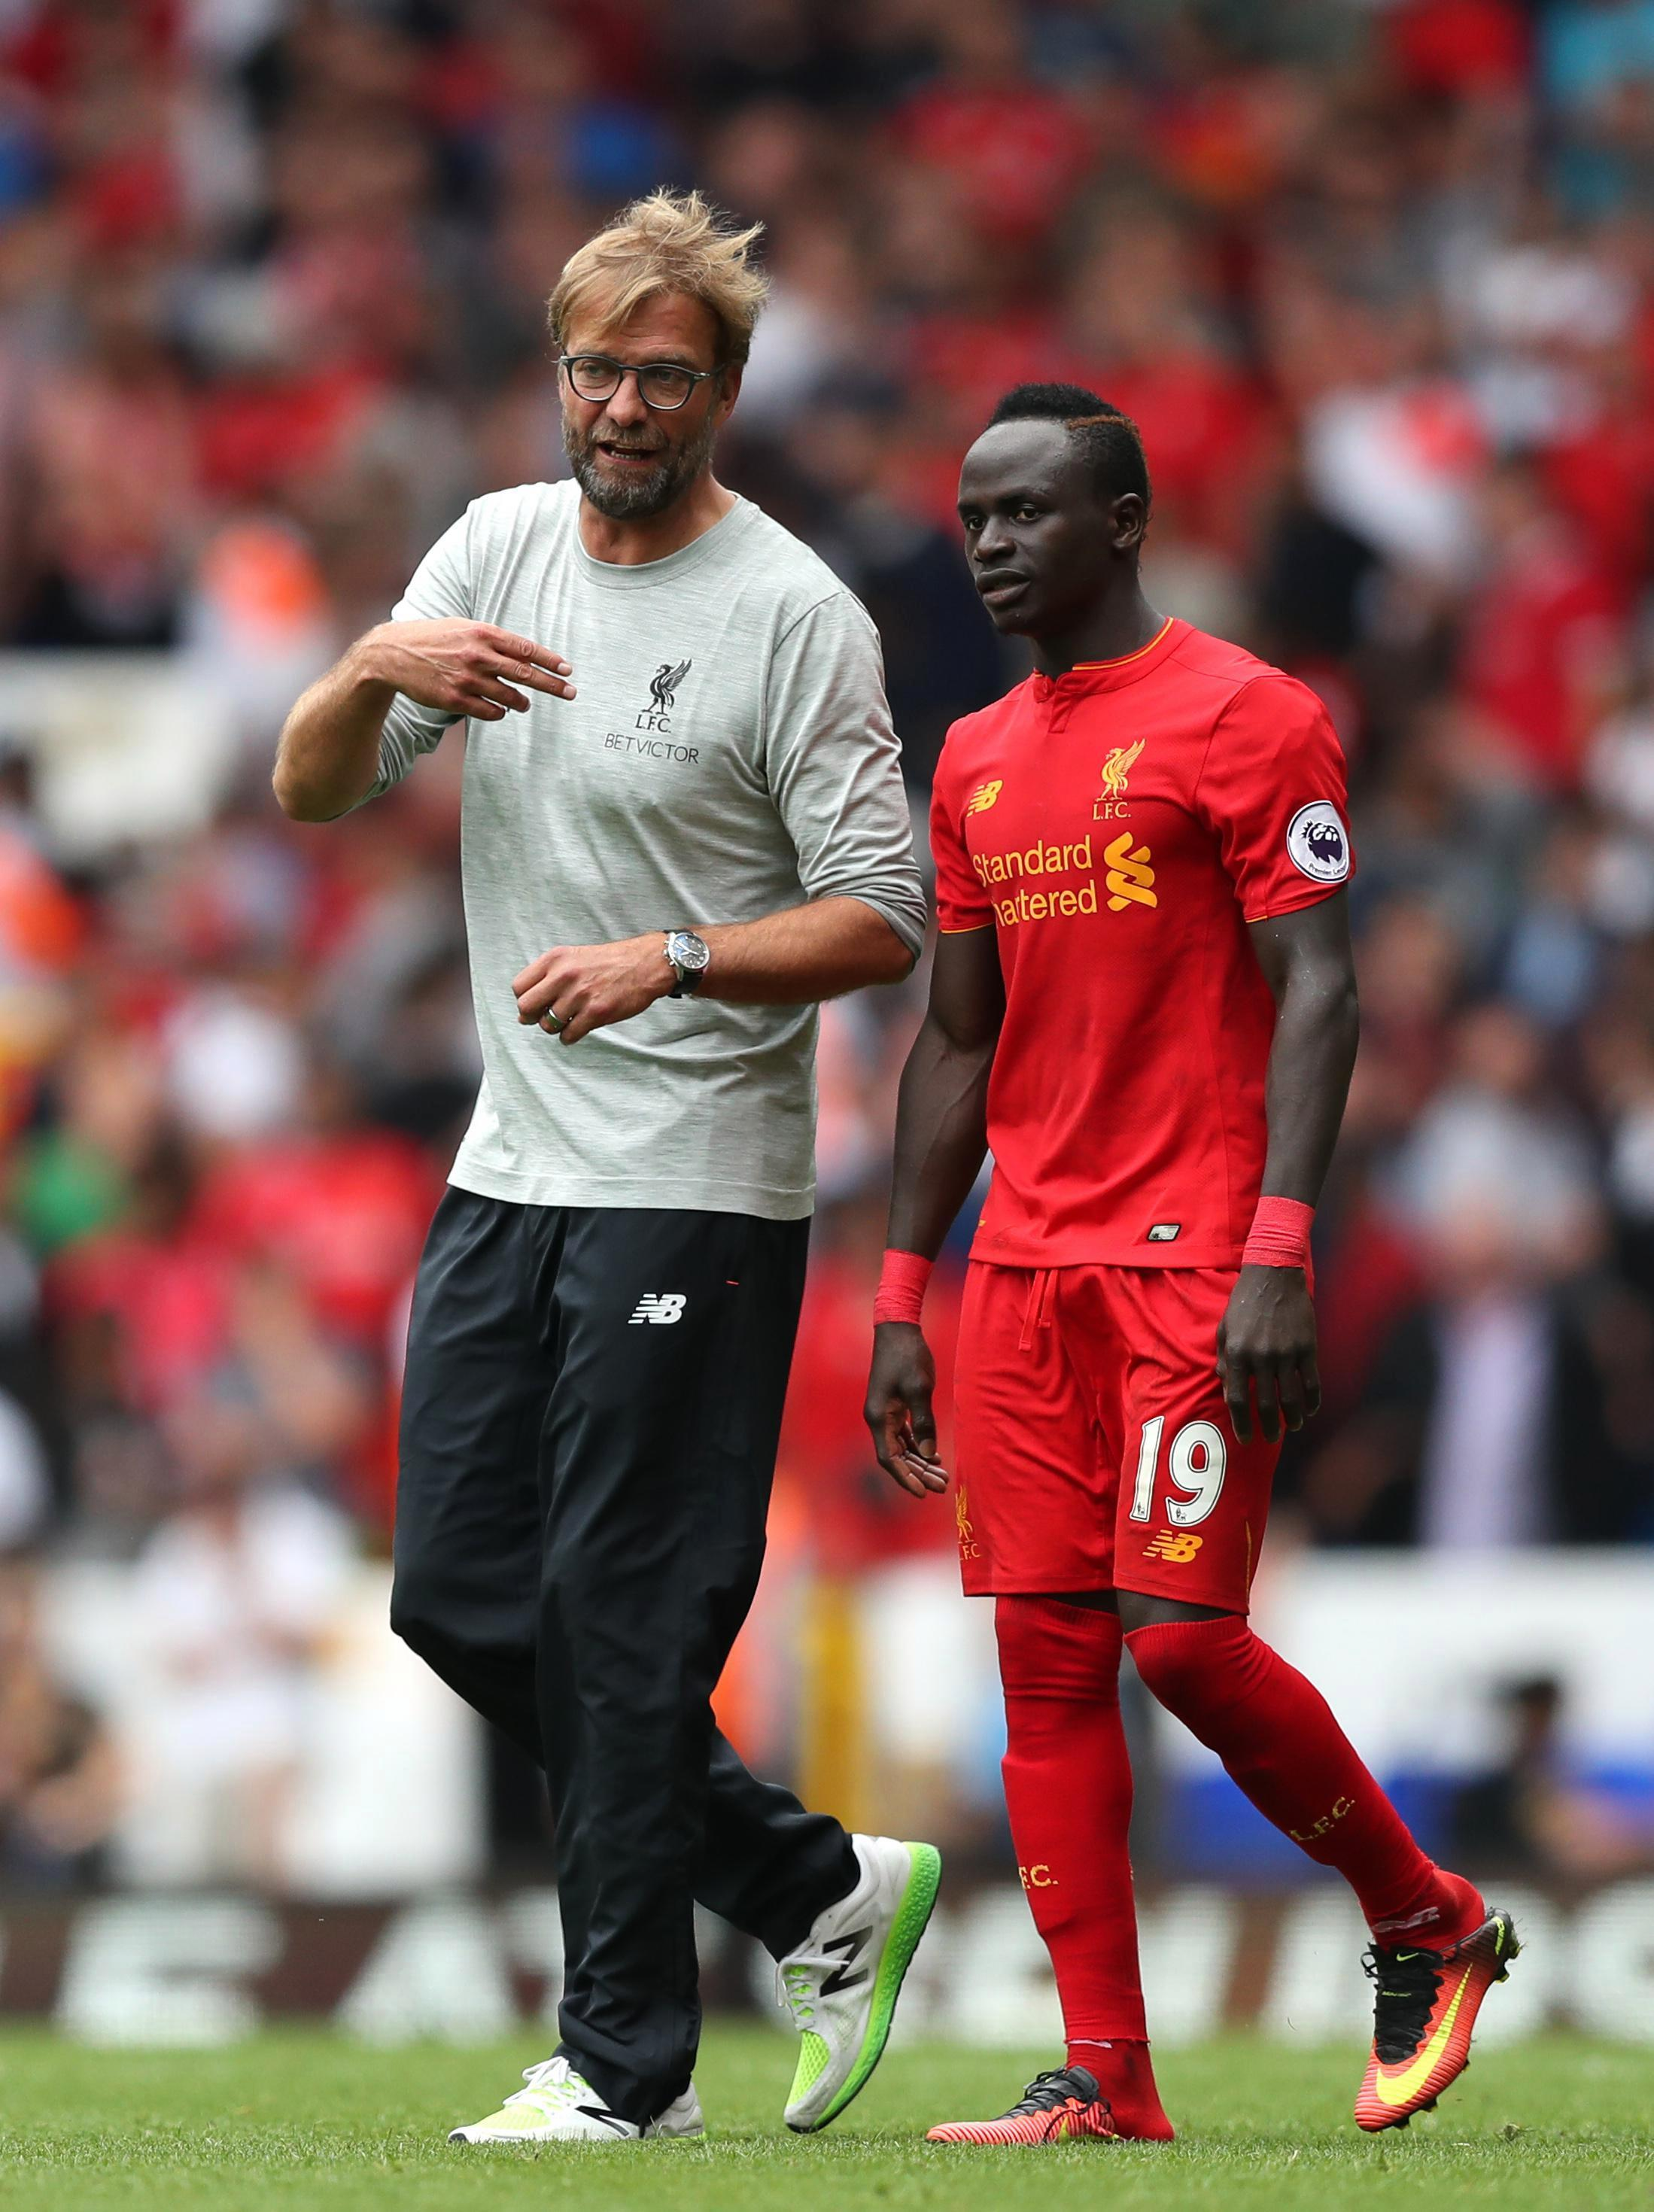 Liverpool news: Sadio Mane lifts the lid on why he has become Anfield's Incredible Sulk and his relationship with Jurgen Klopp